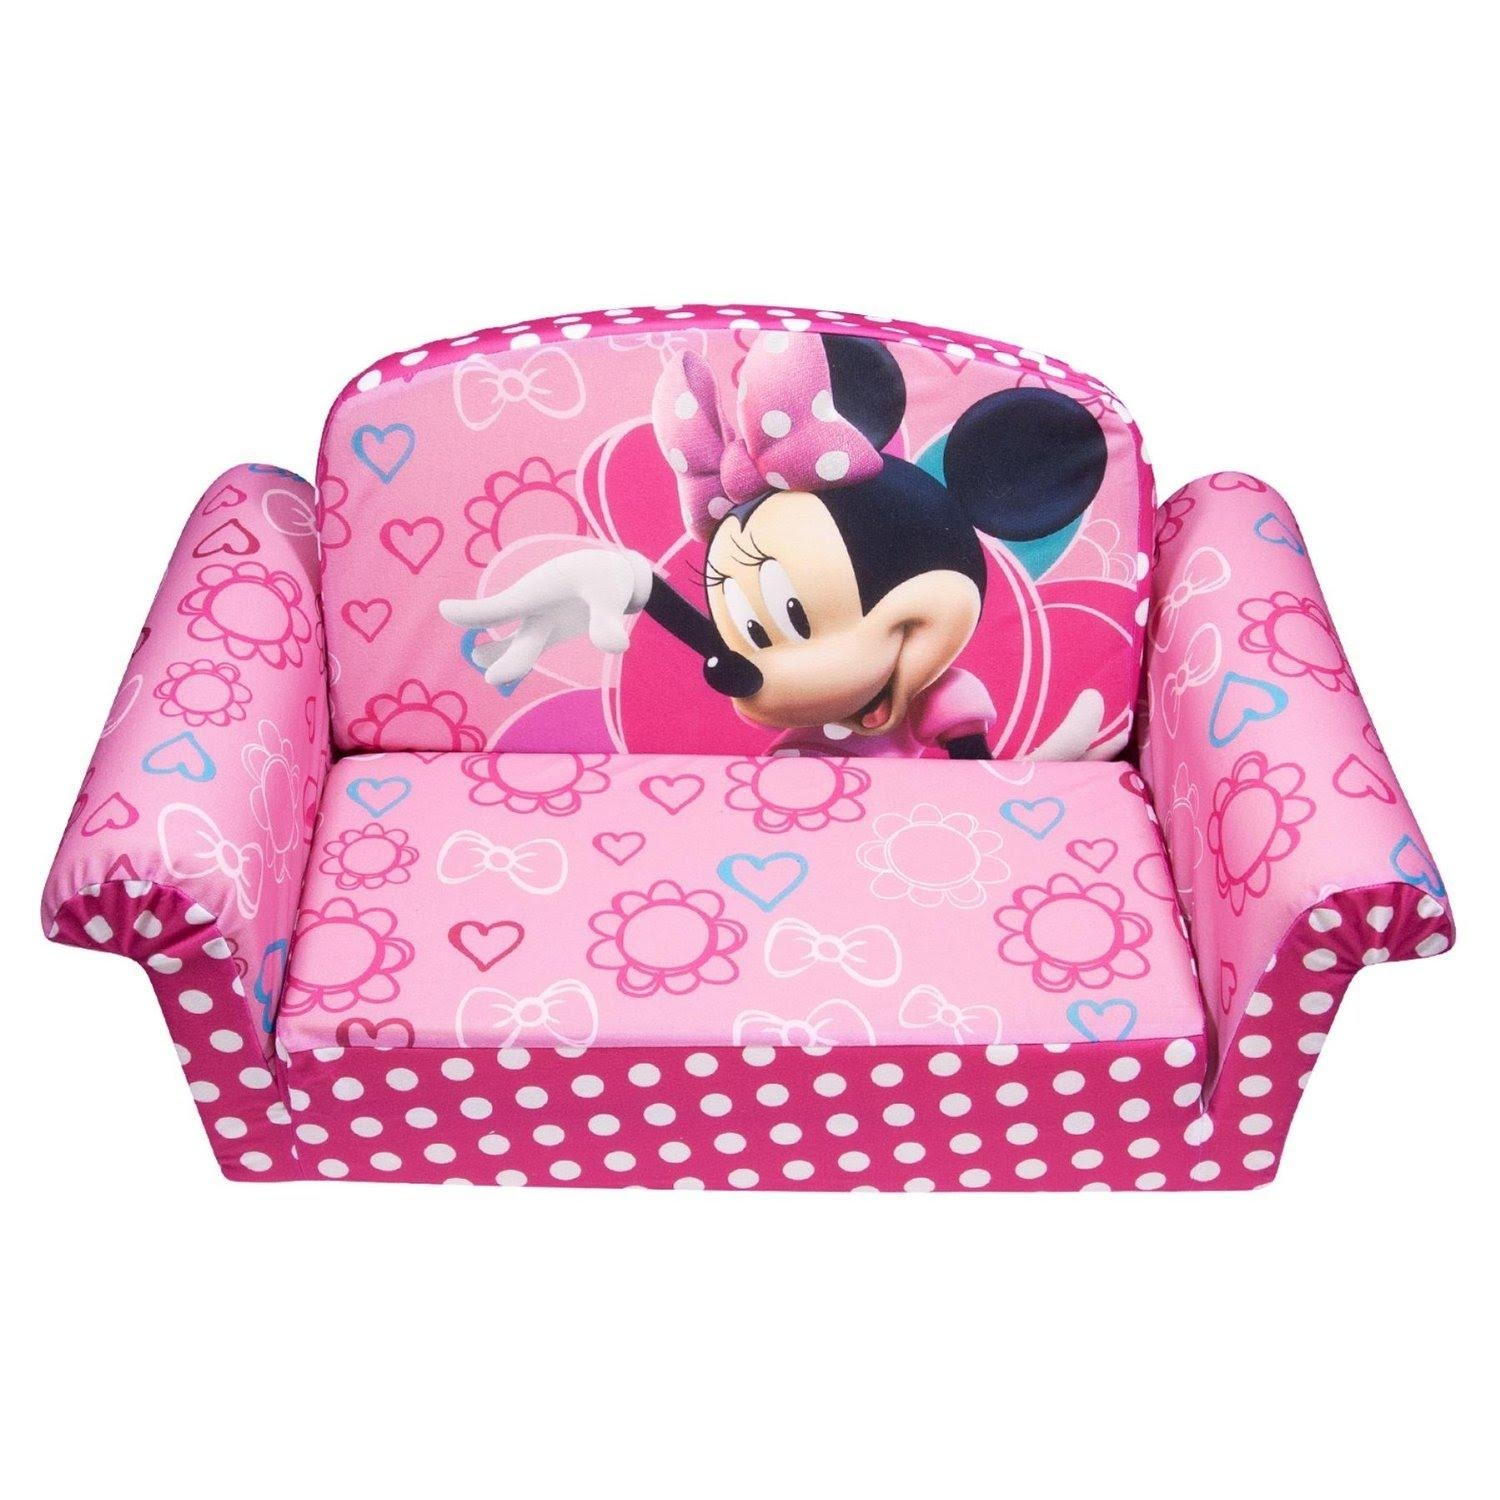 Review: Marshmallow Children's Furniture – 2 In 1 Flip Open Sofa Pertaining To Mickey Flip Sofas (View 14 of 20)